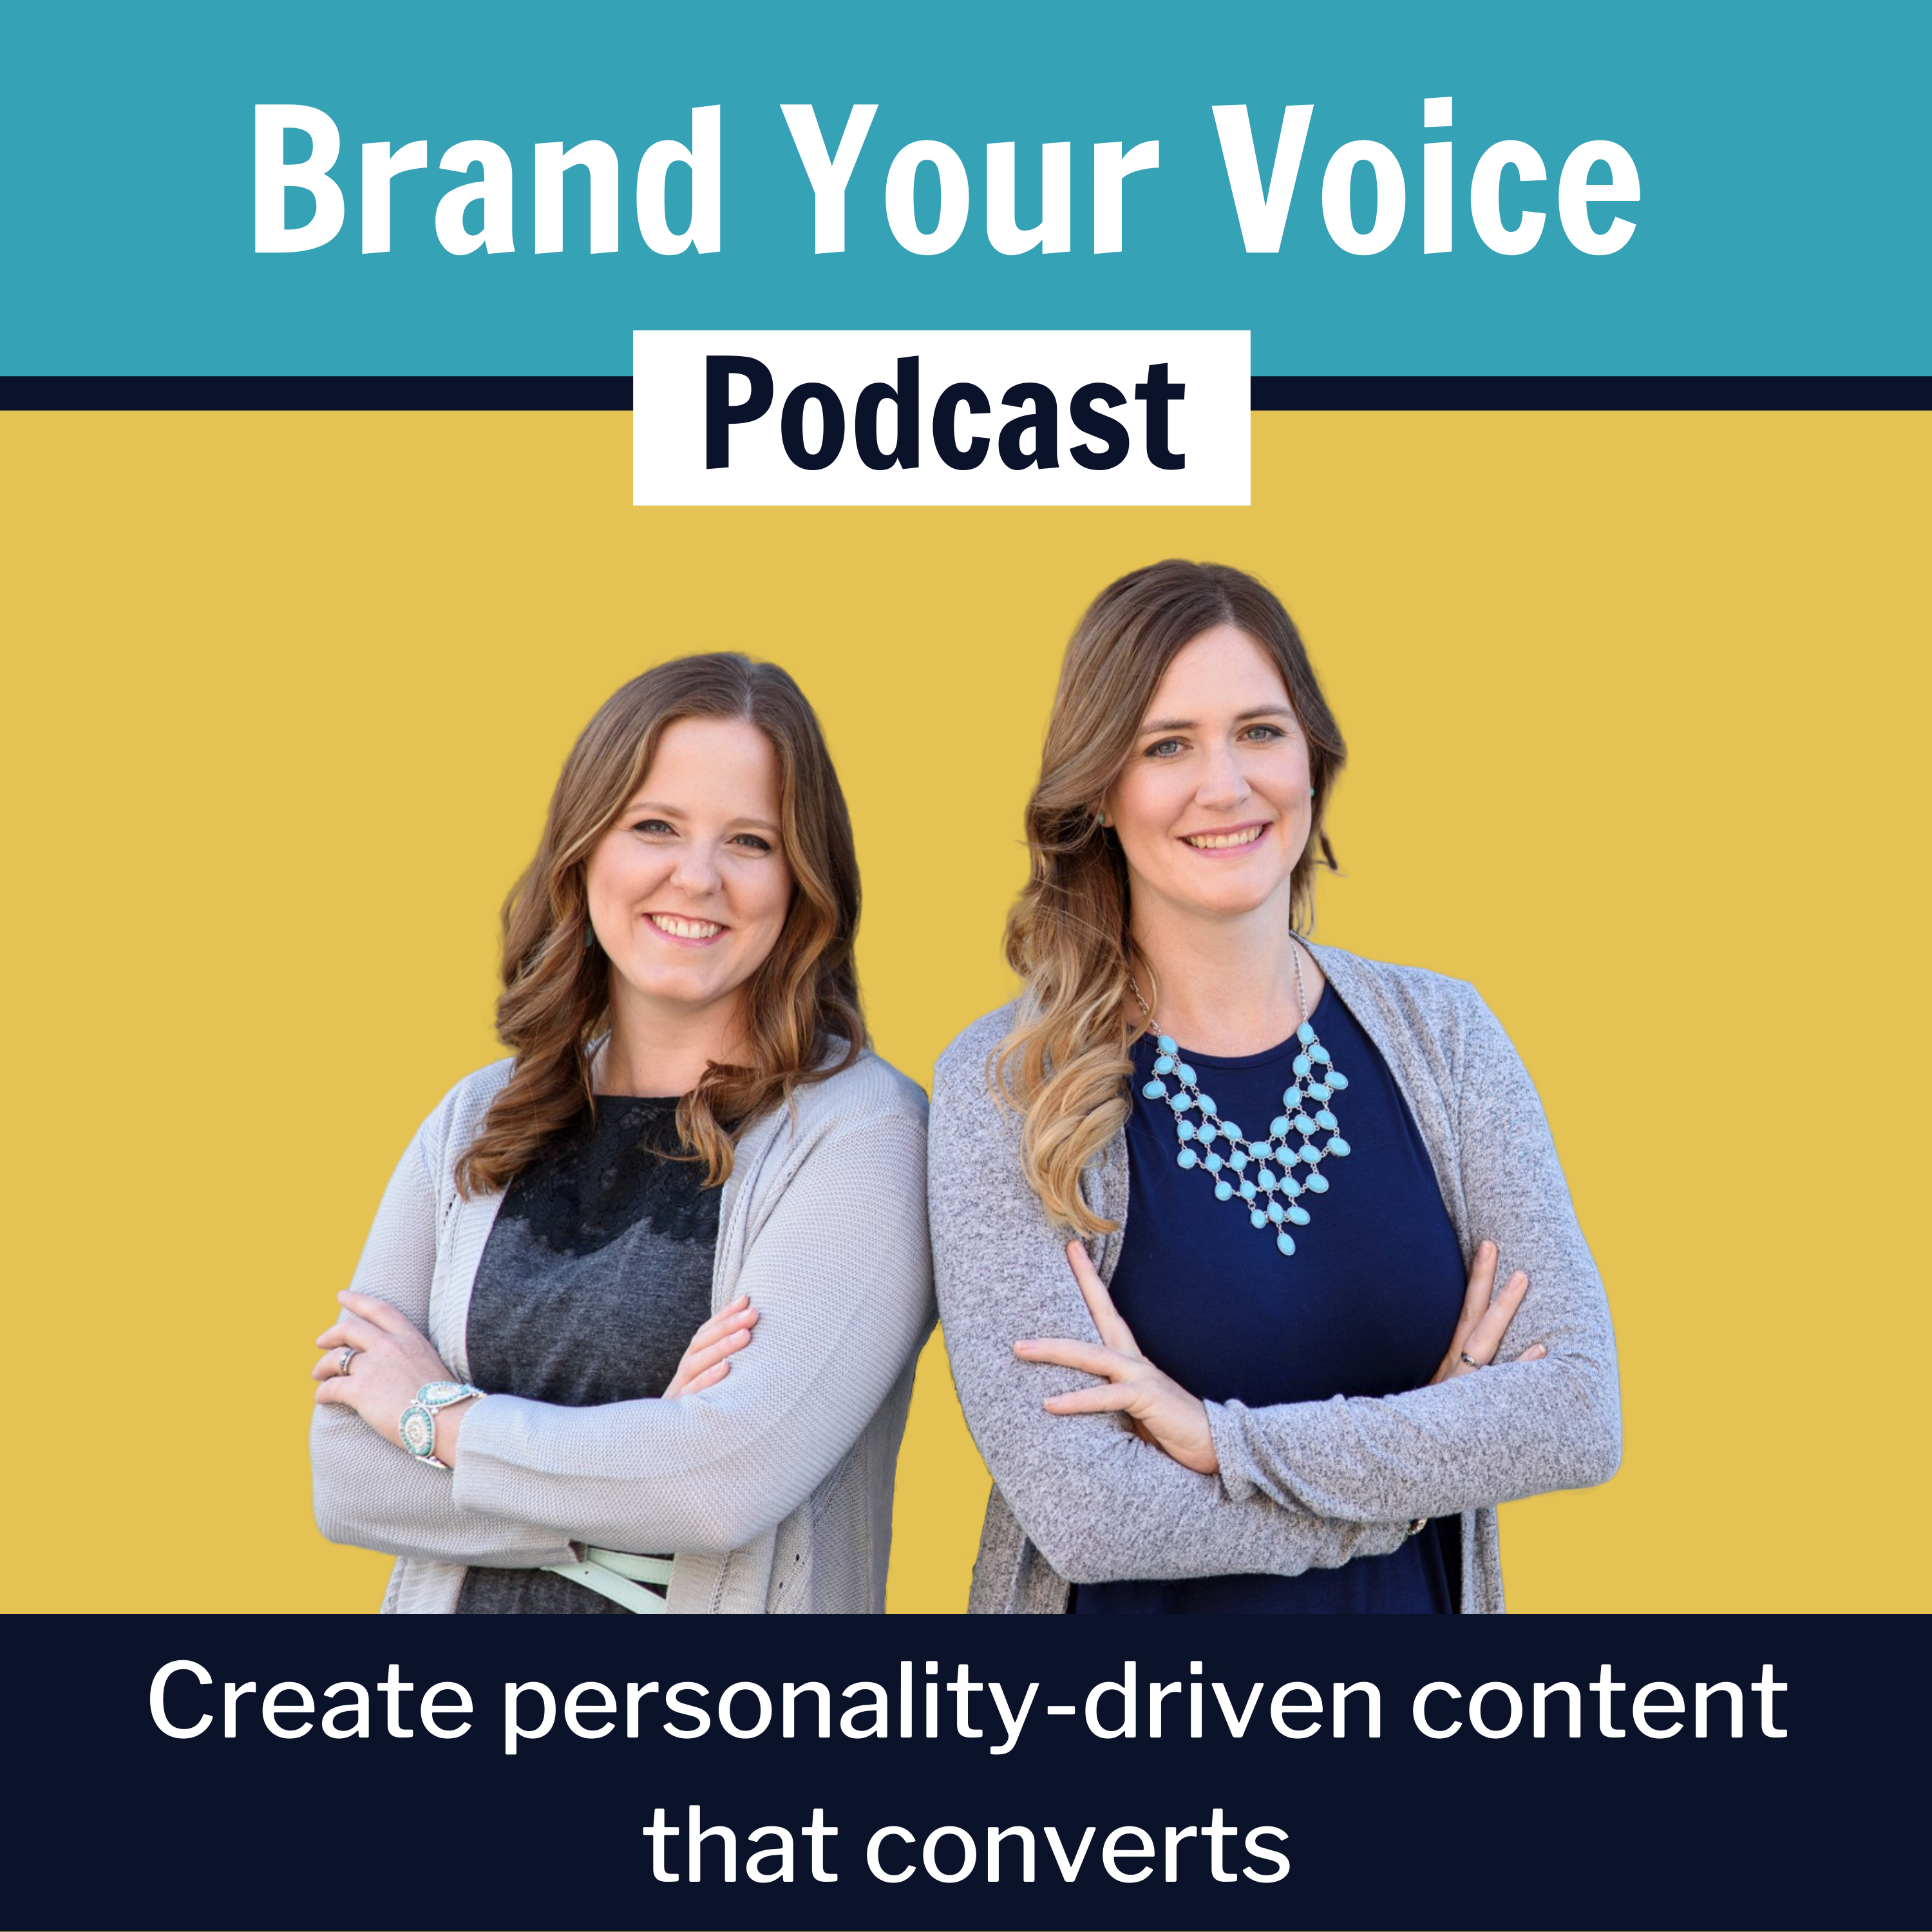 Brand Your Voice Podcast show art